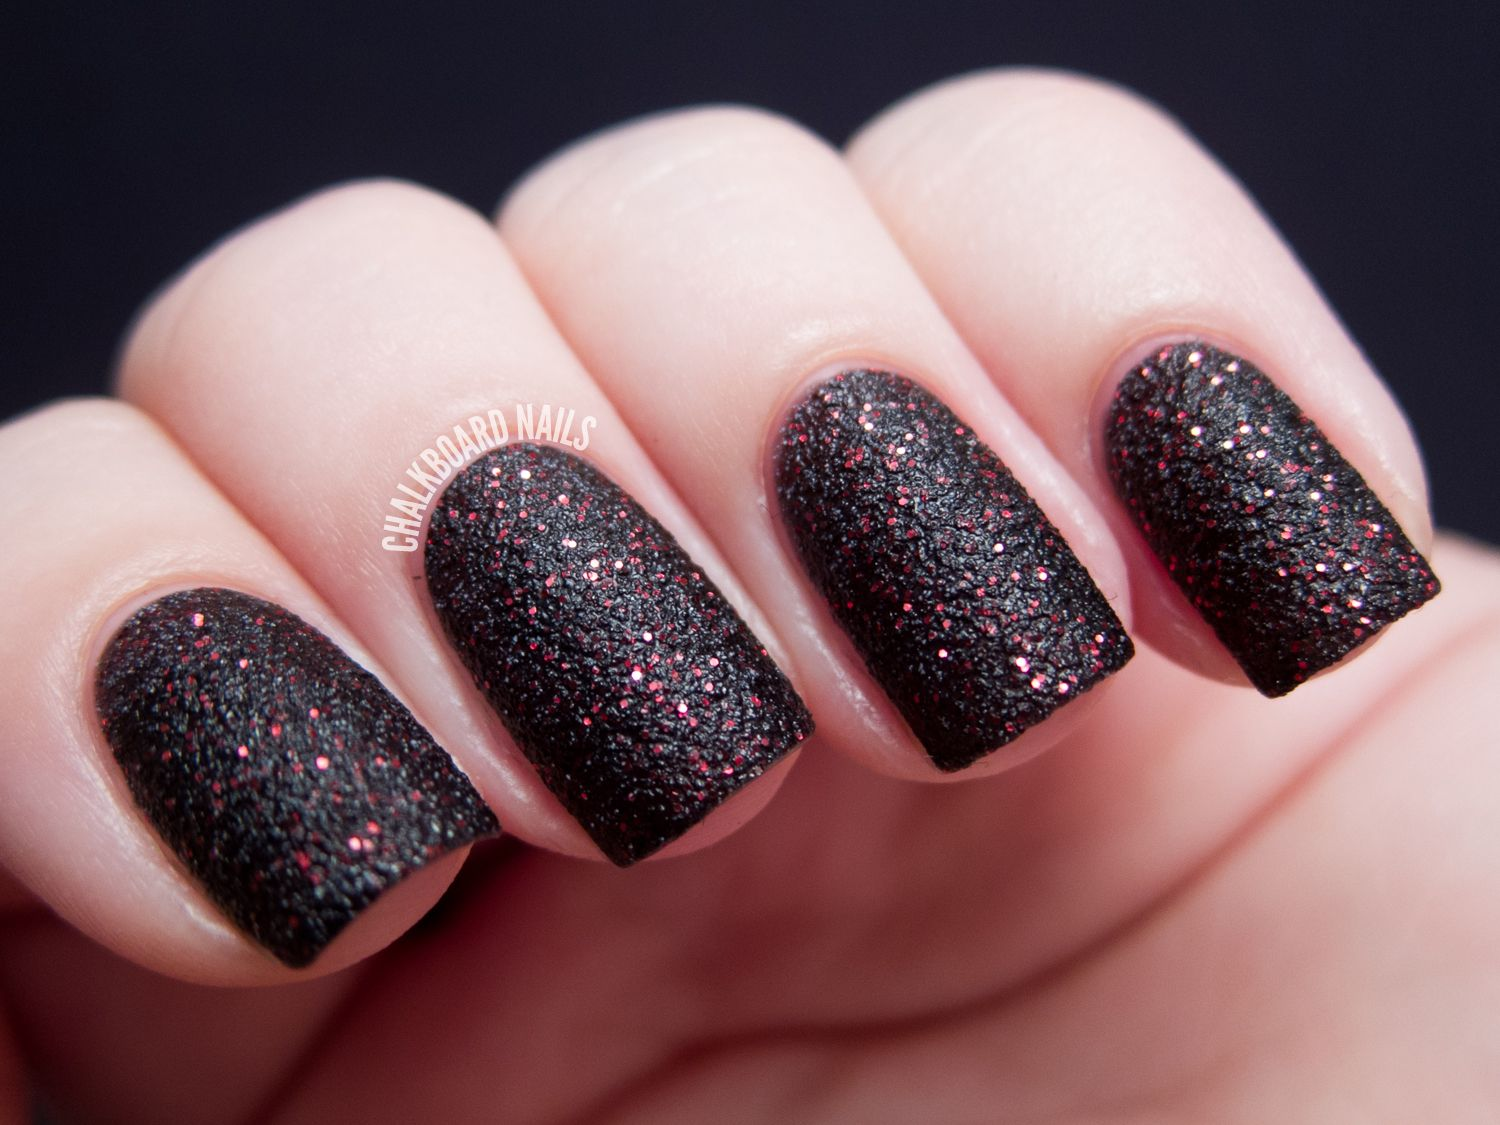 General Black Gothic Nail Design Ideas With Slightly Red Color